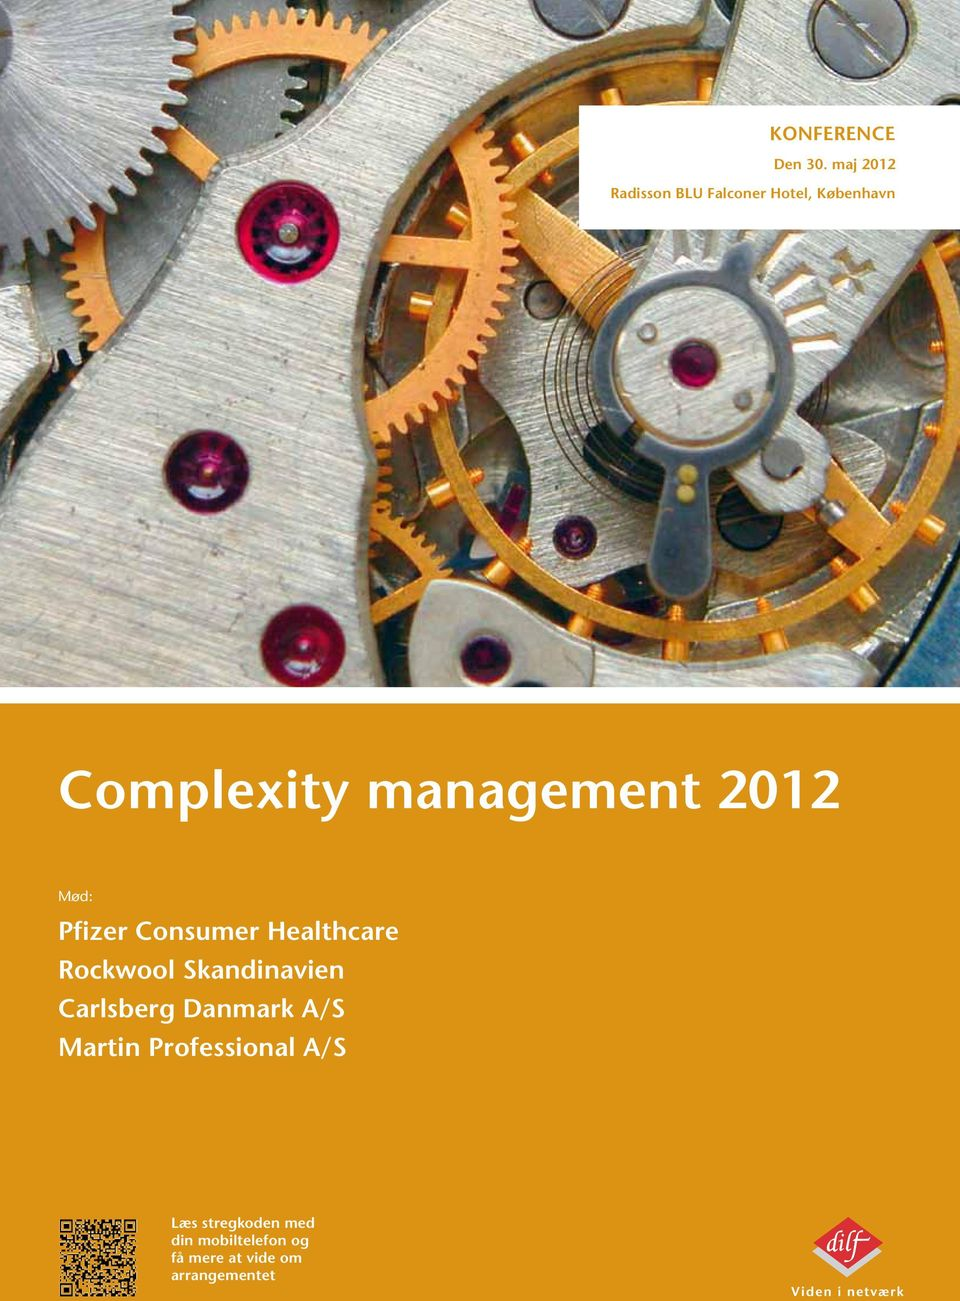 management 2012 Mød: Pfizer Consumer Healthcare Rockwool